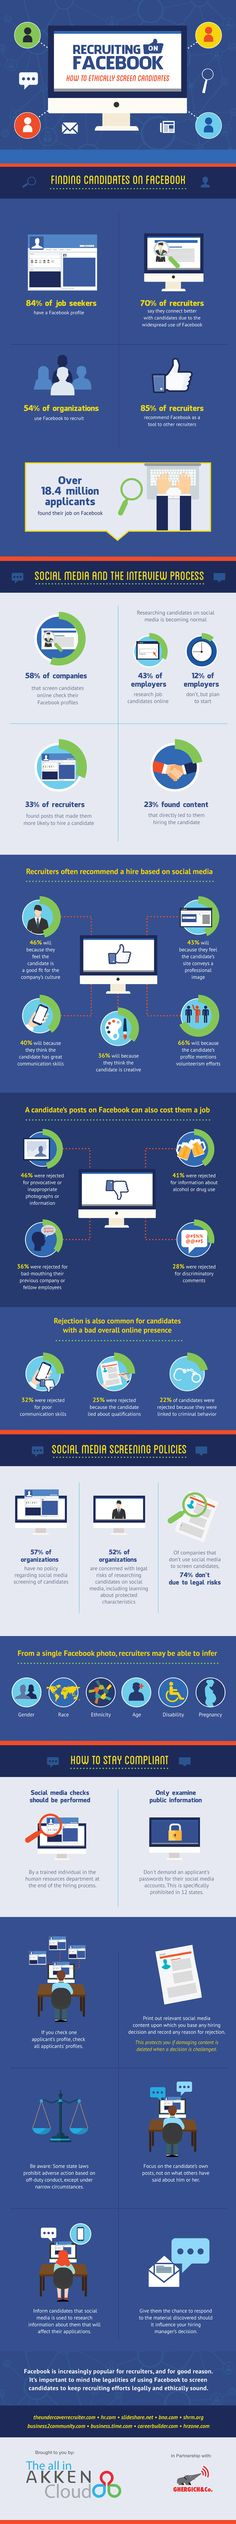 Recruiting on Facebook: How to Ethically Screen Candidates